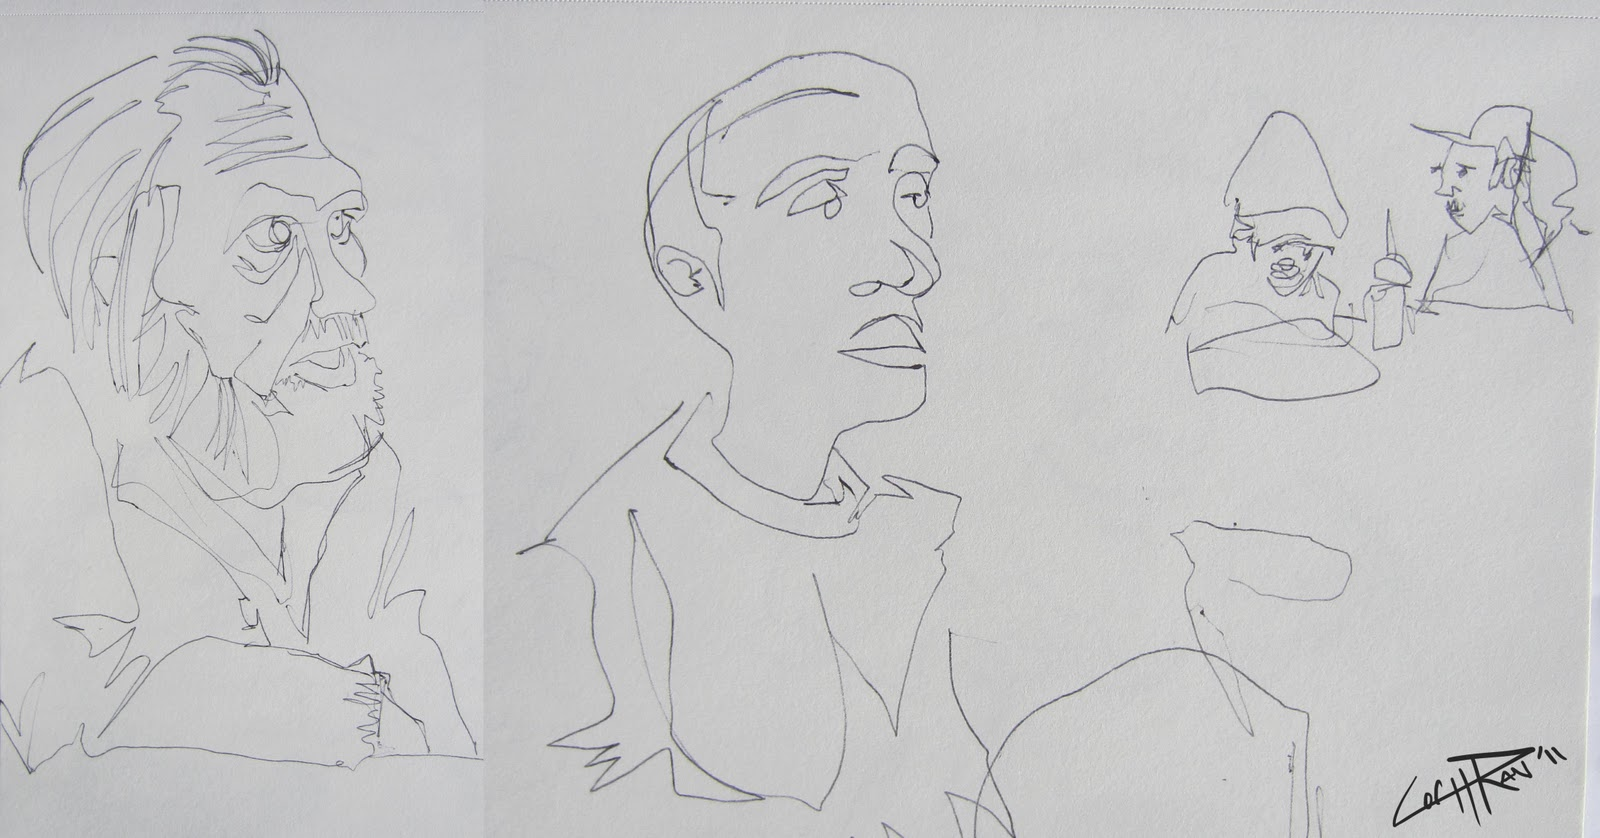 Contour Line Drawing Of A Person : Ways to get good at drawing wikihow